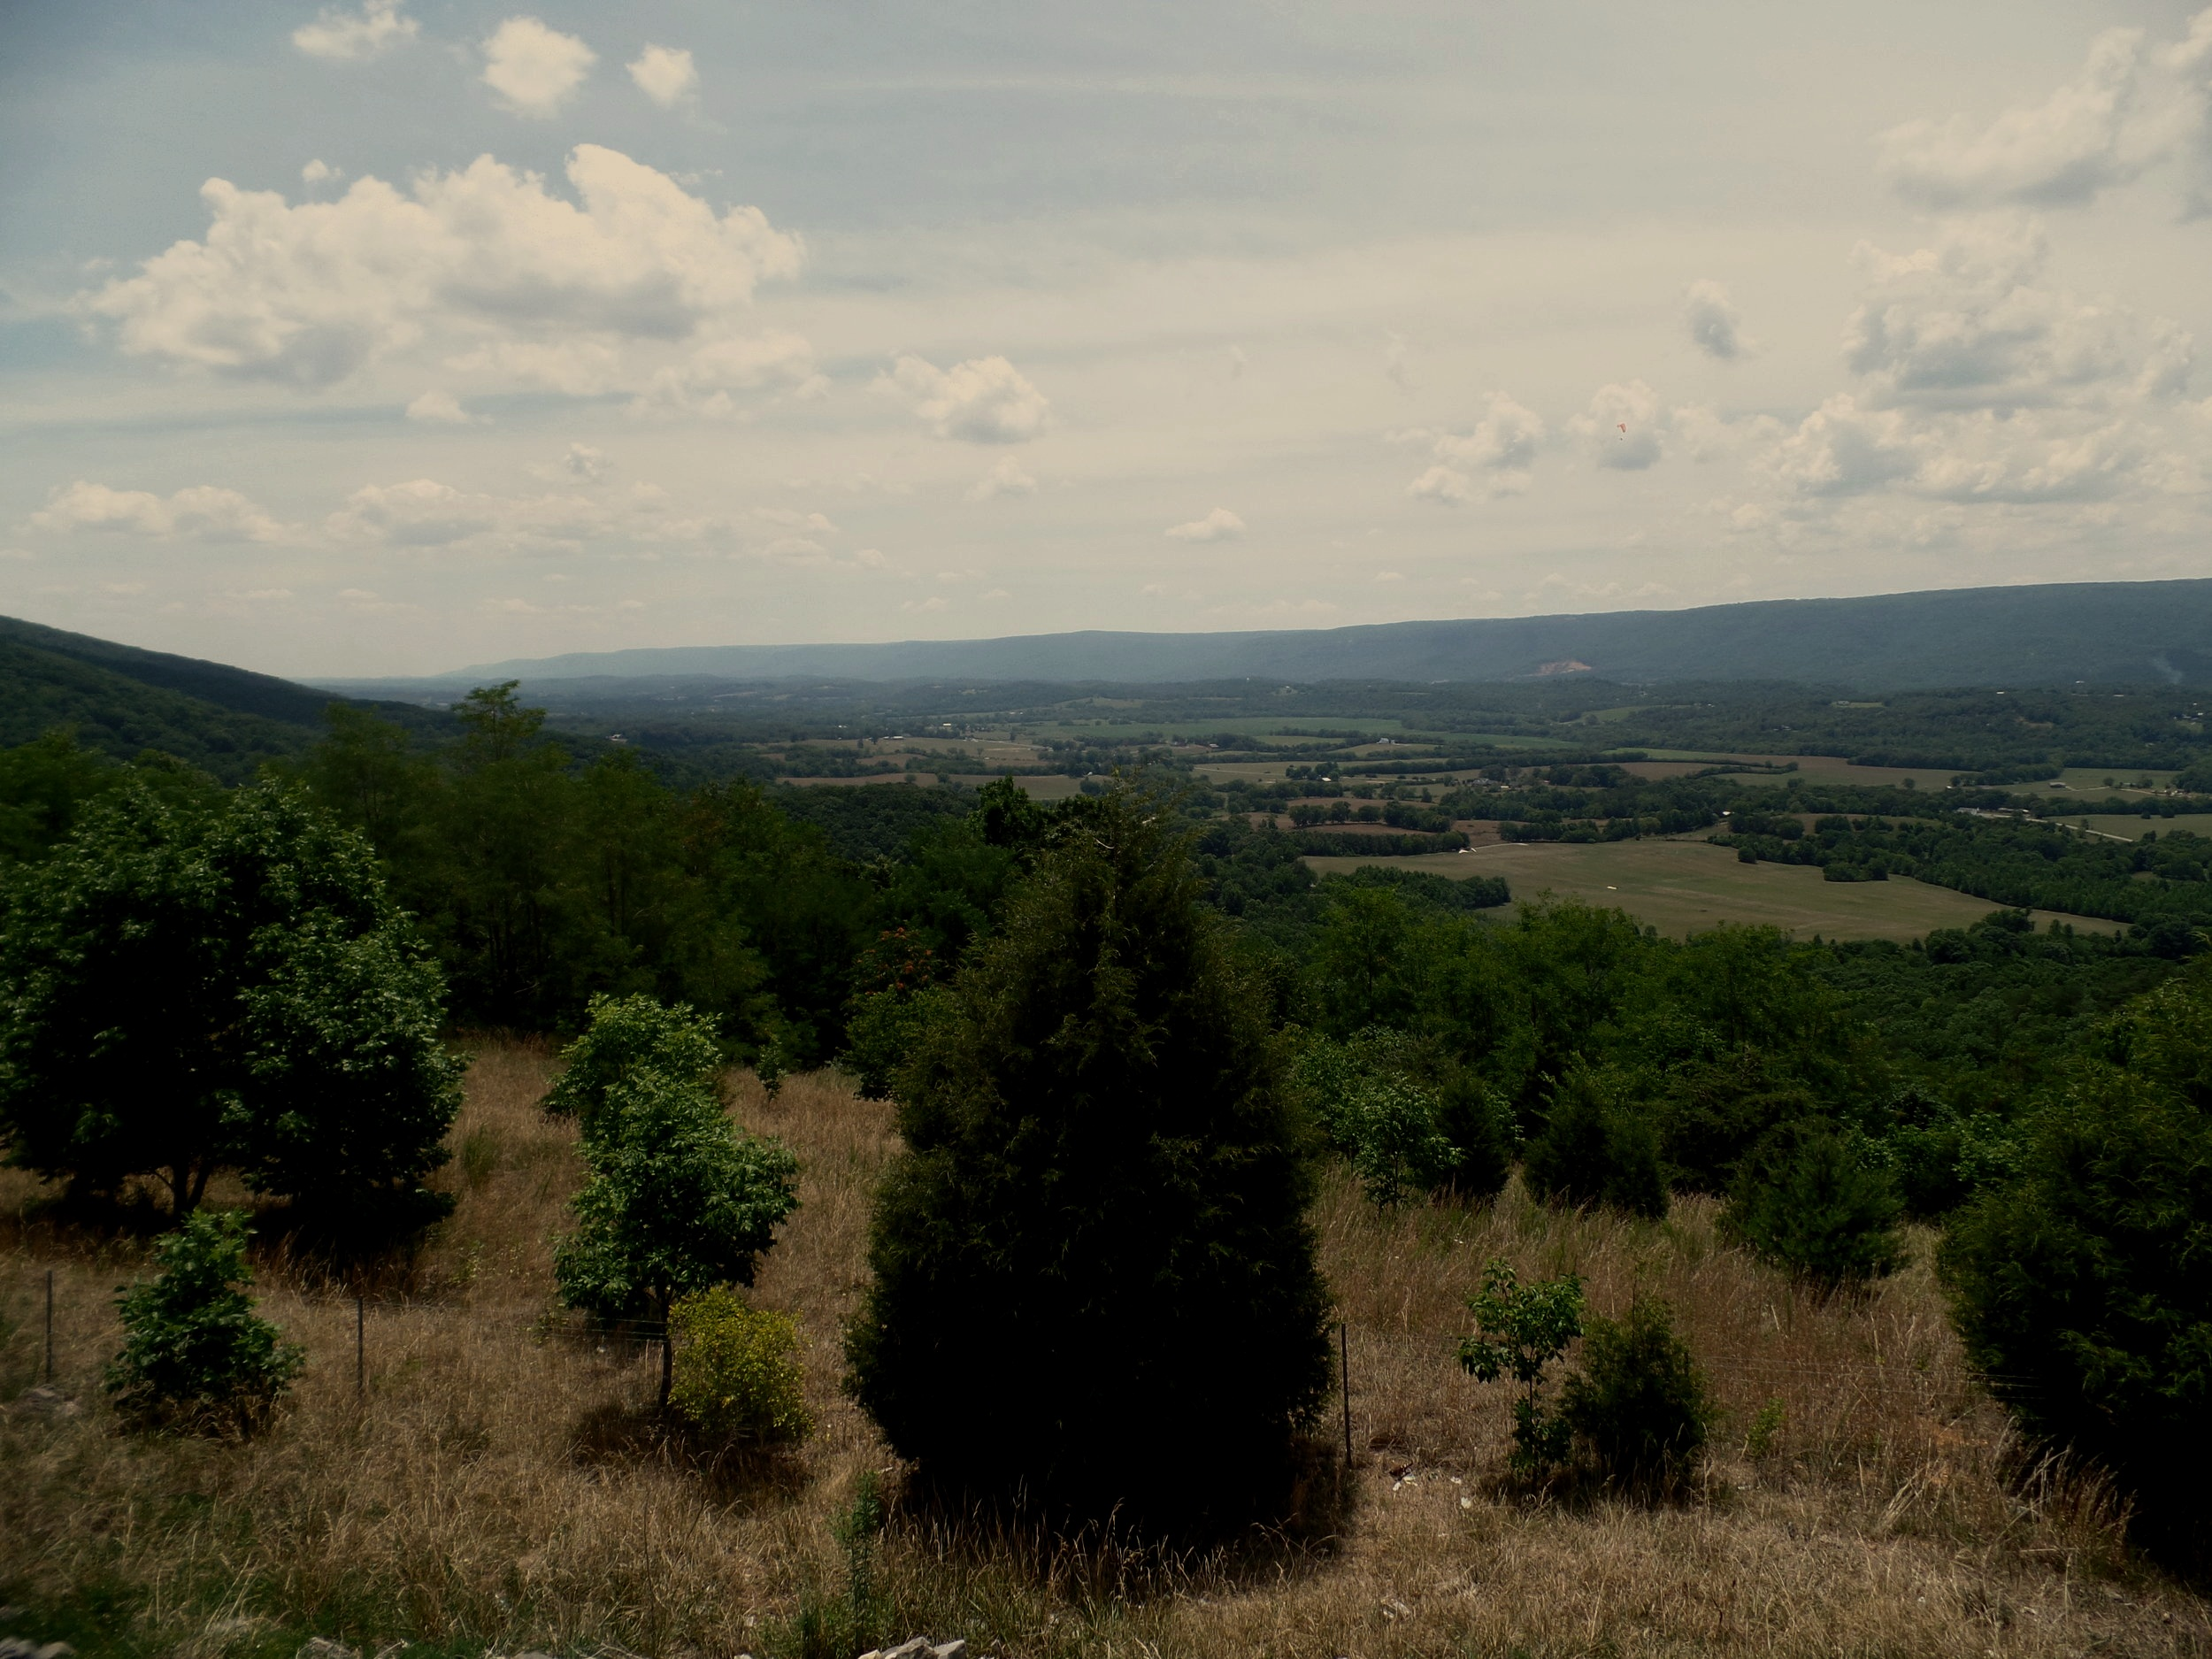 Just above Dunlap on Highway 111, an overlook gives you a sweeping view of the Sequatchie Valley. If you time your visit there right, you'll get to see hangliders coming off the mountain heading for the valley floor.